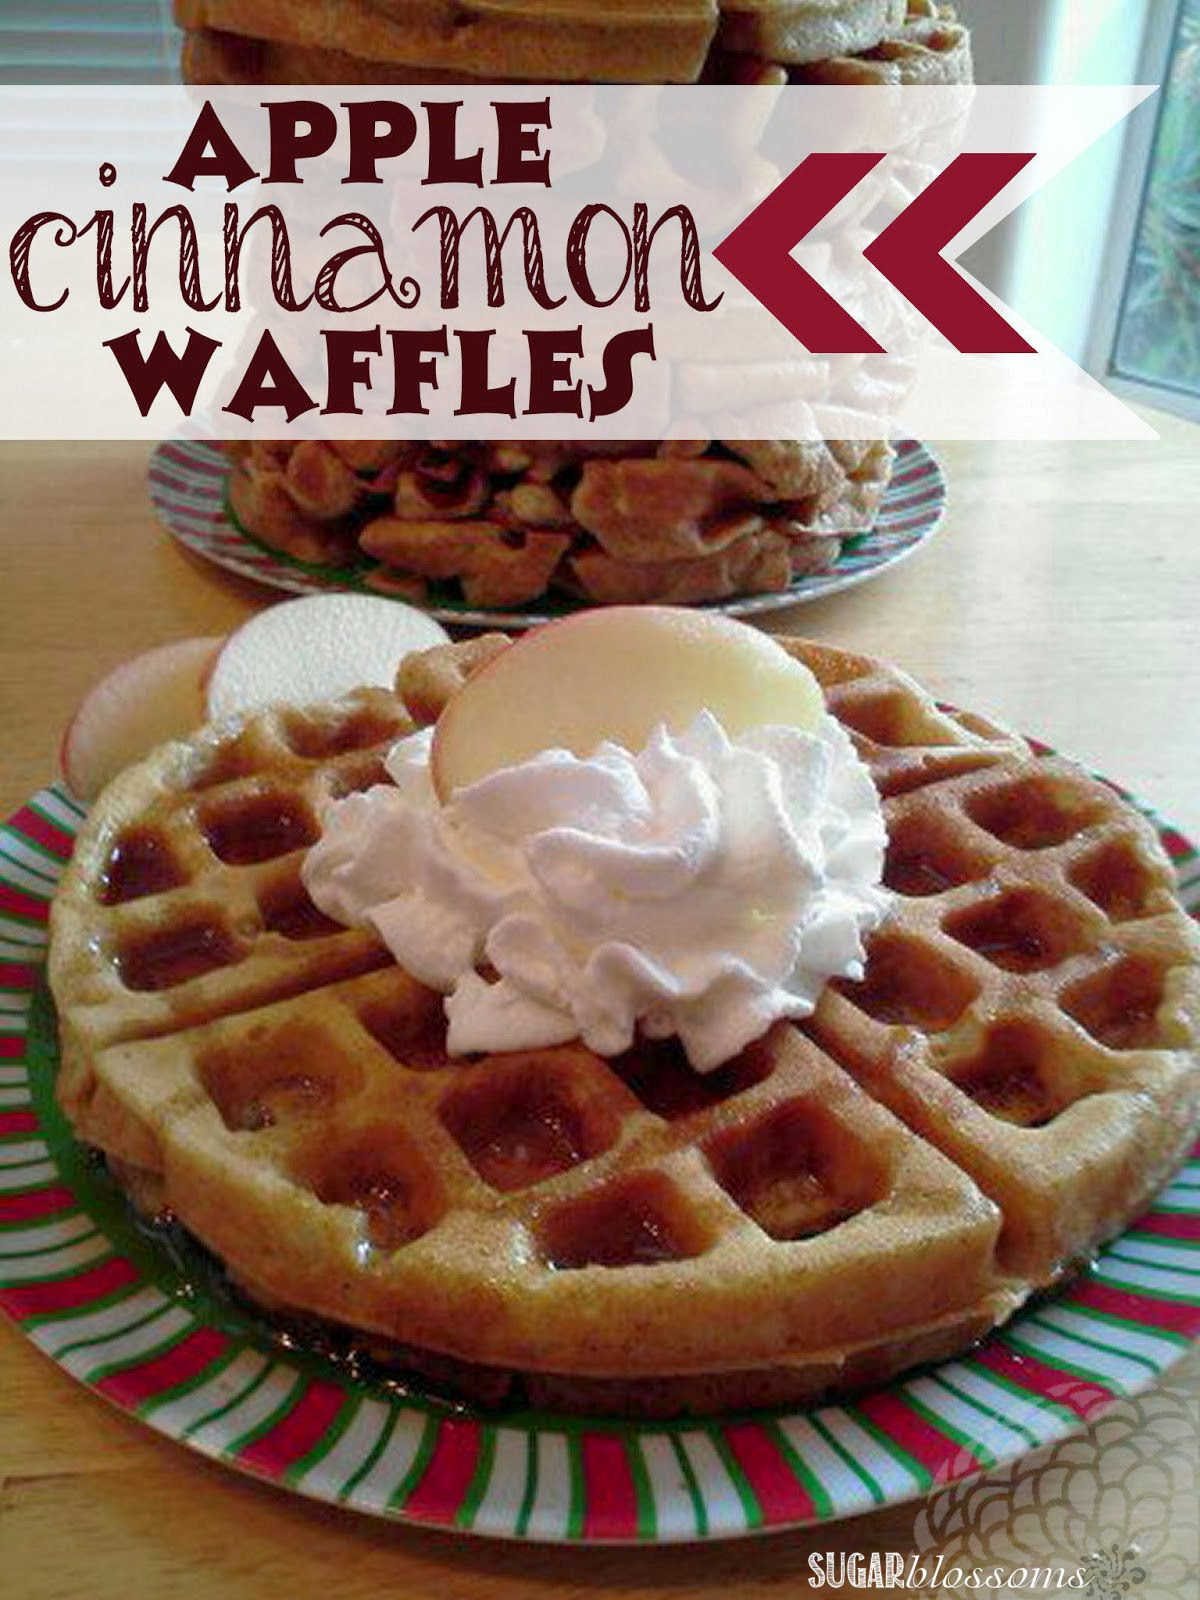 http://sweetsugarblossoms.blogspot.com/2014/01/apple-cinnamon-waffles.html